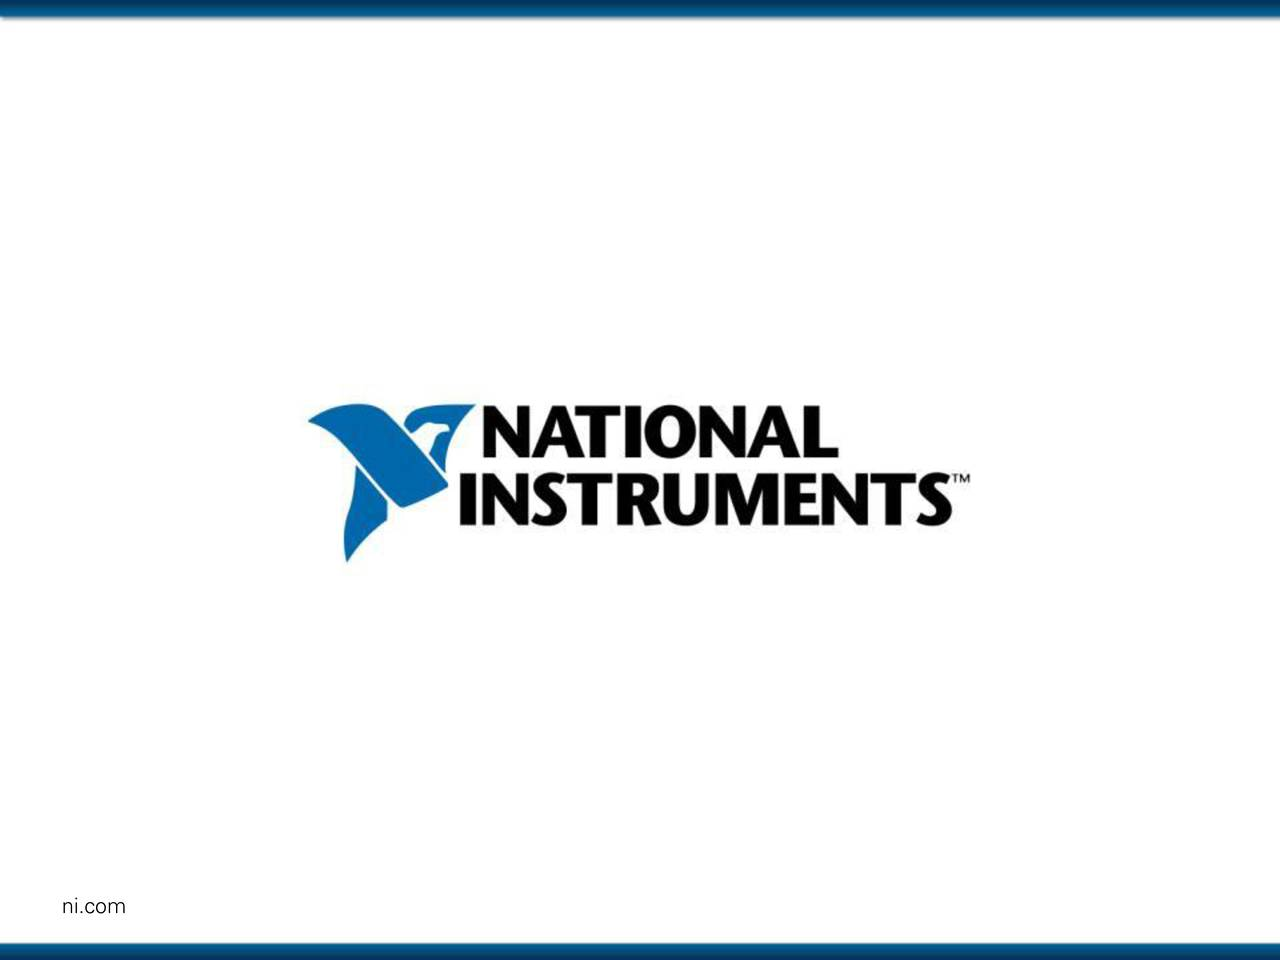 dfdfad57 National Instruments Corporation 2016 Q3 - Results - Earnings Call Slides